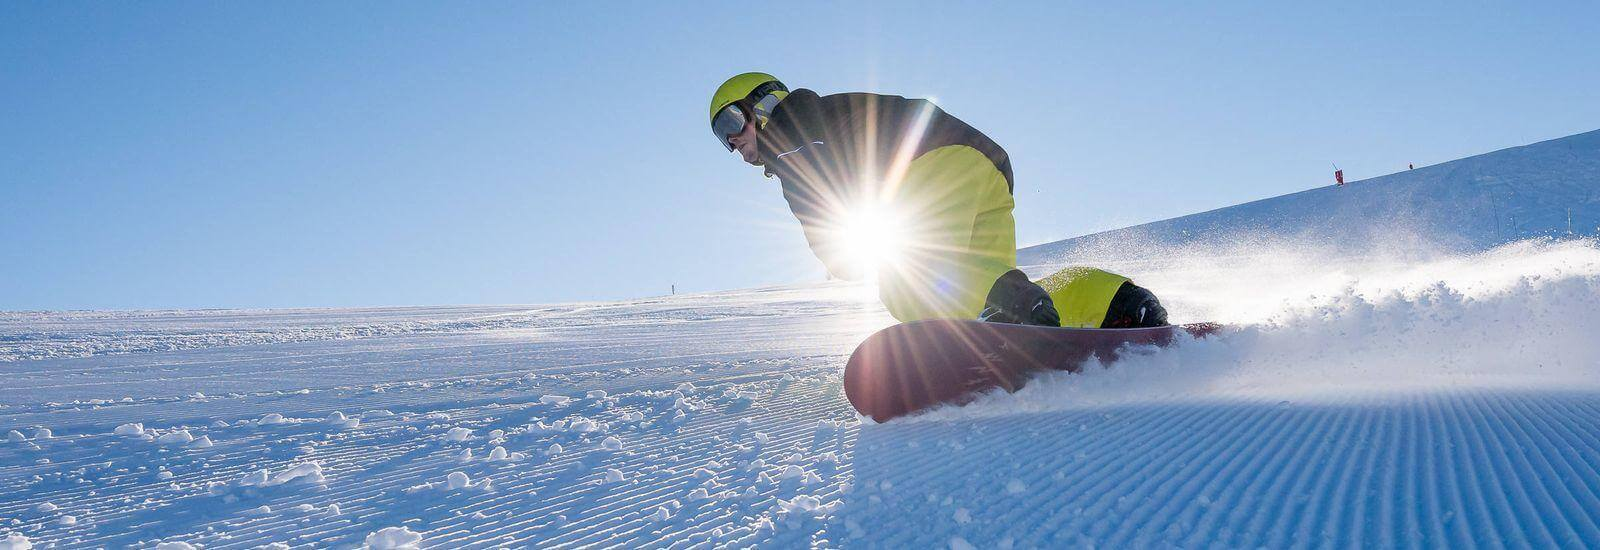 How To Choose The Right Snowboard in 4 Steps (Buyer's Guide)